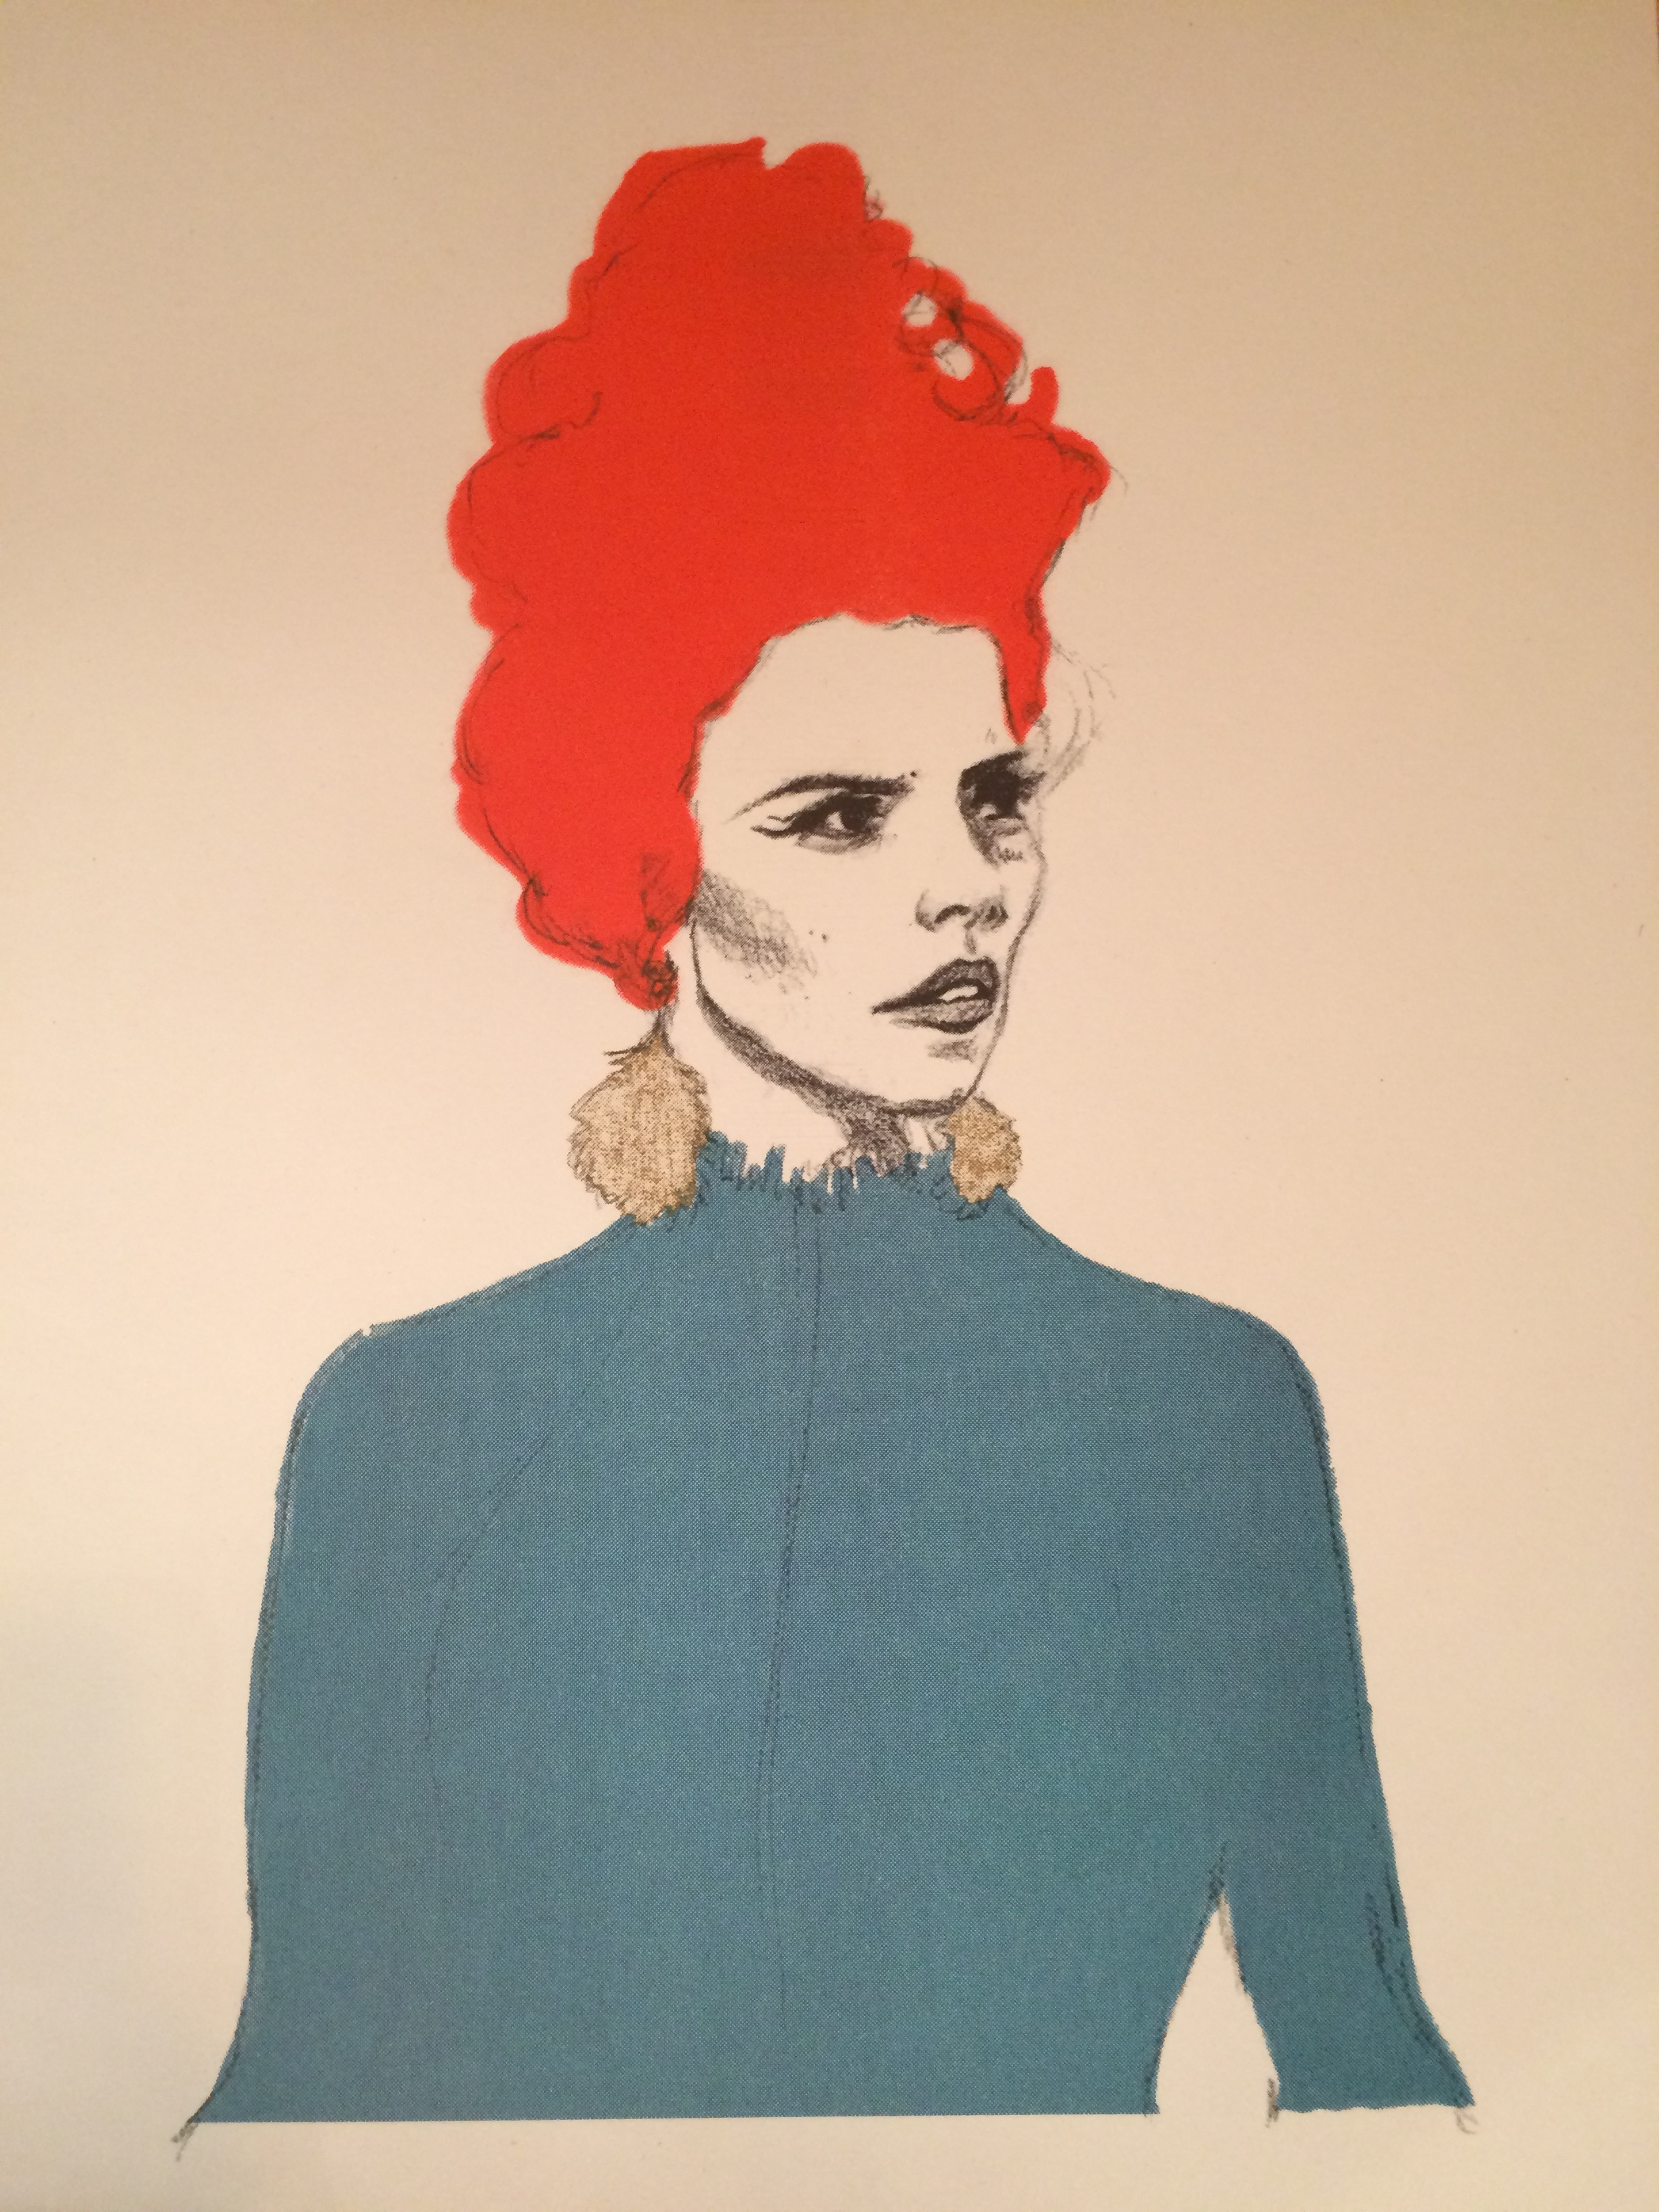 The red hive, the gold earrings the teal top.... classic Yuletide Paloma. Risograph print executed by the brilliant Dizzy Ink.